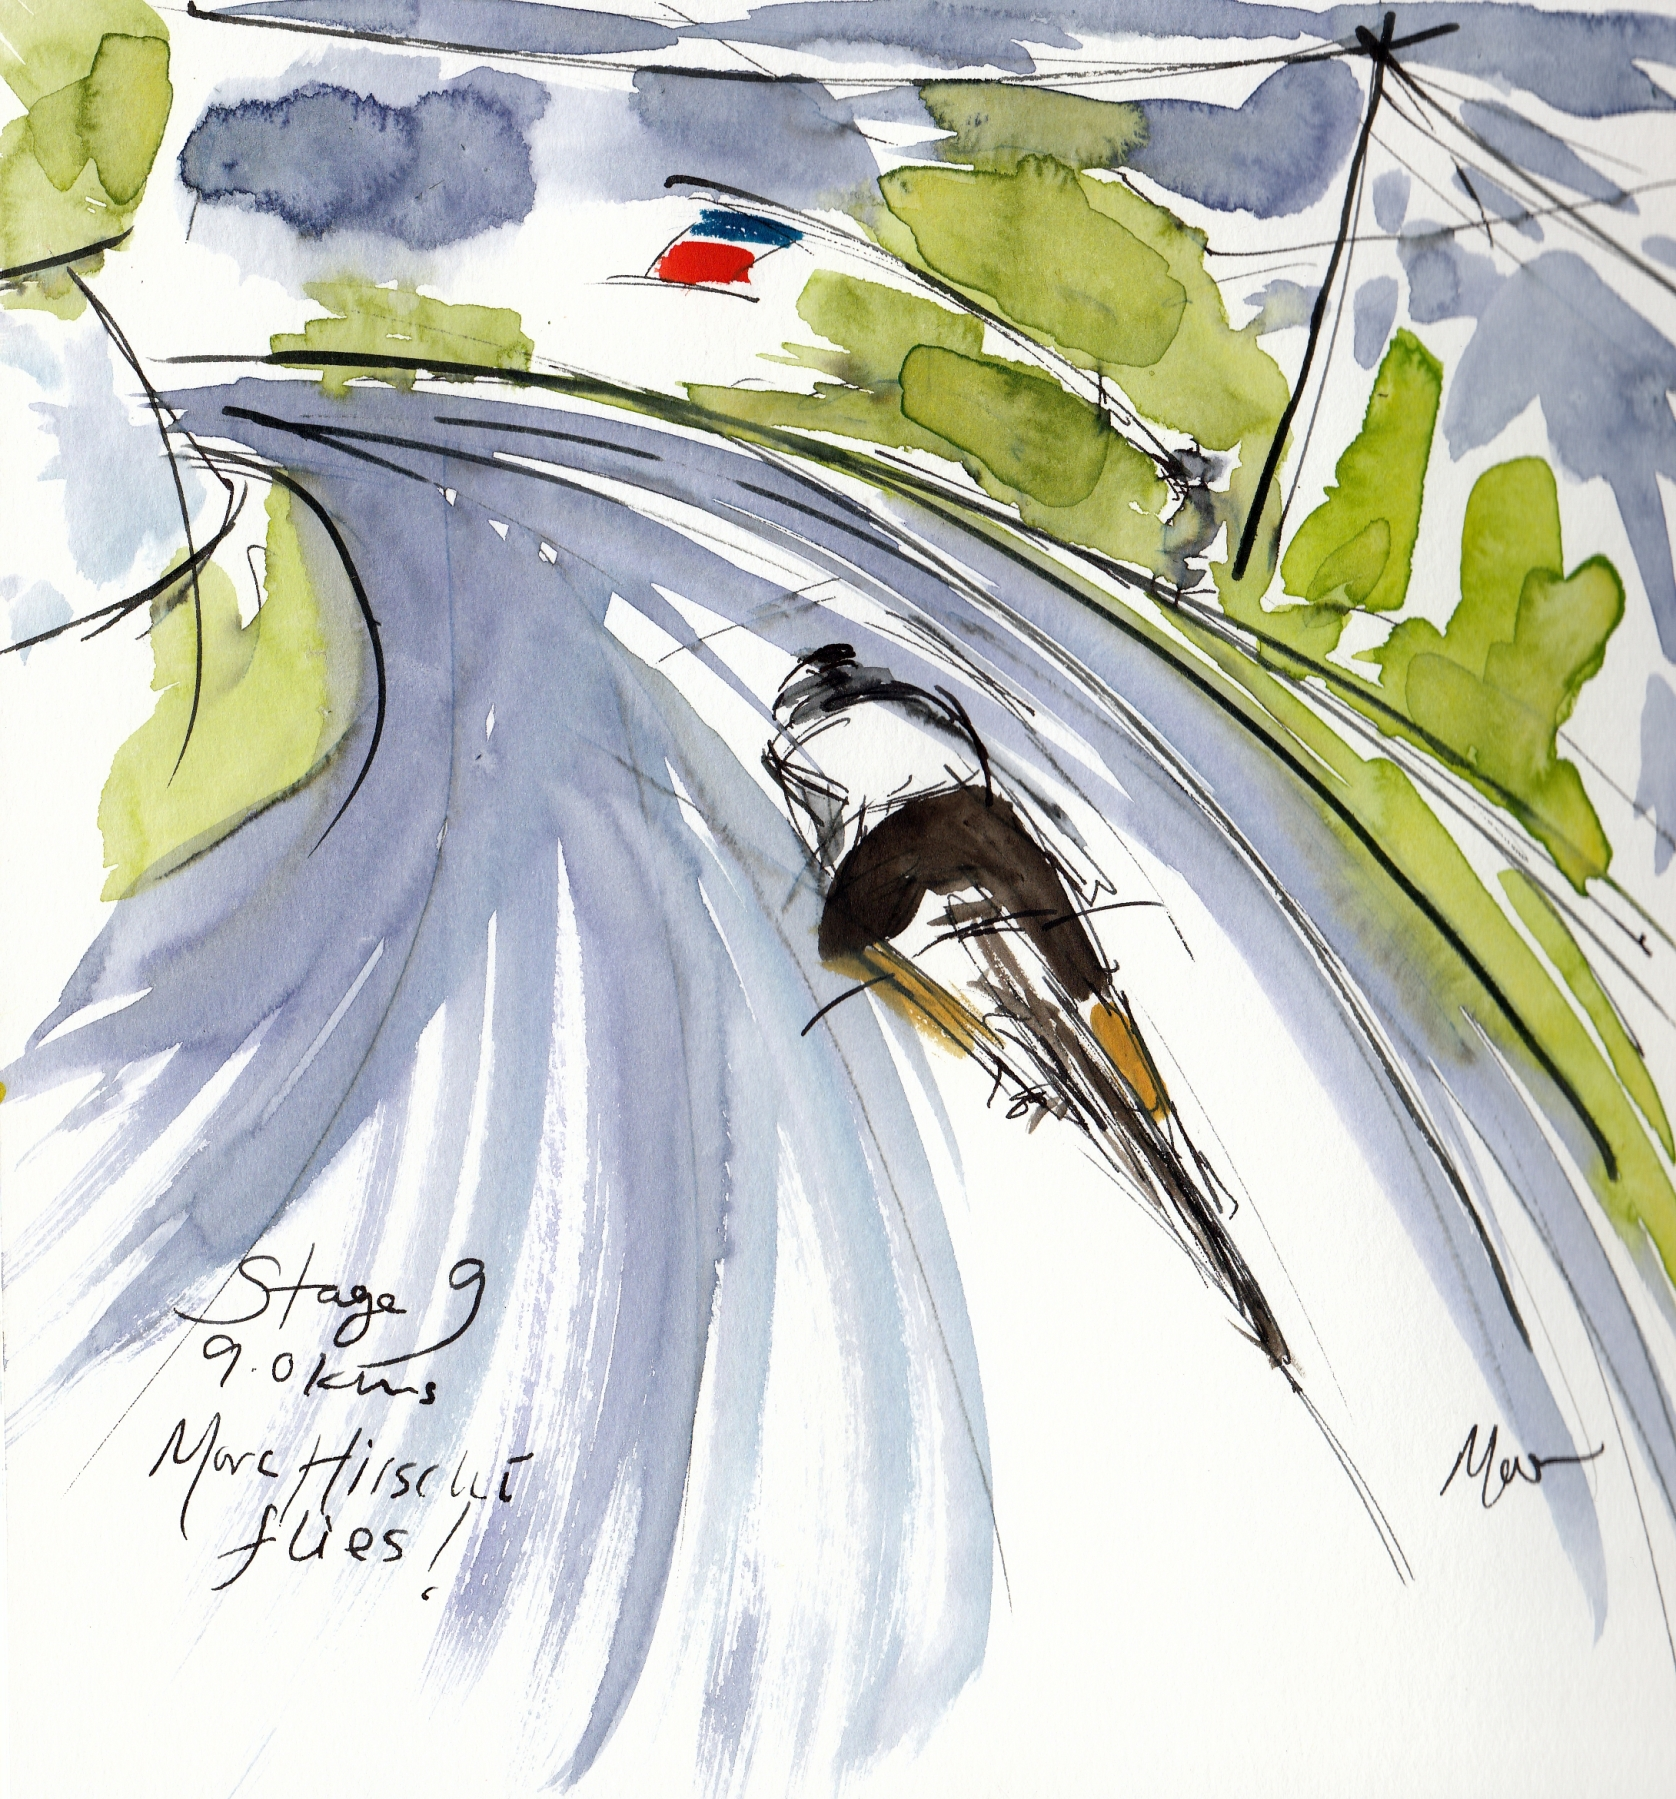 Marc Hirschi flies! watercolour, pen and ink by Maxine Dodd